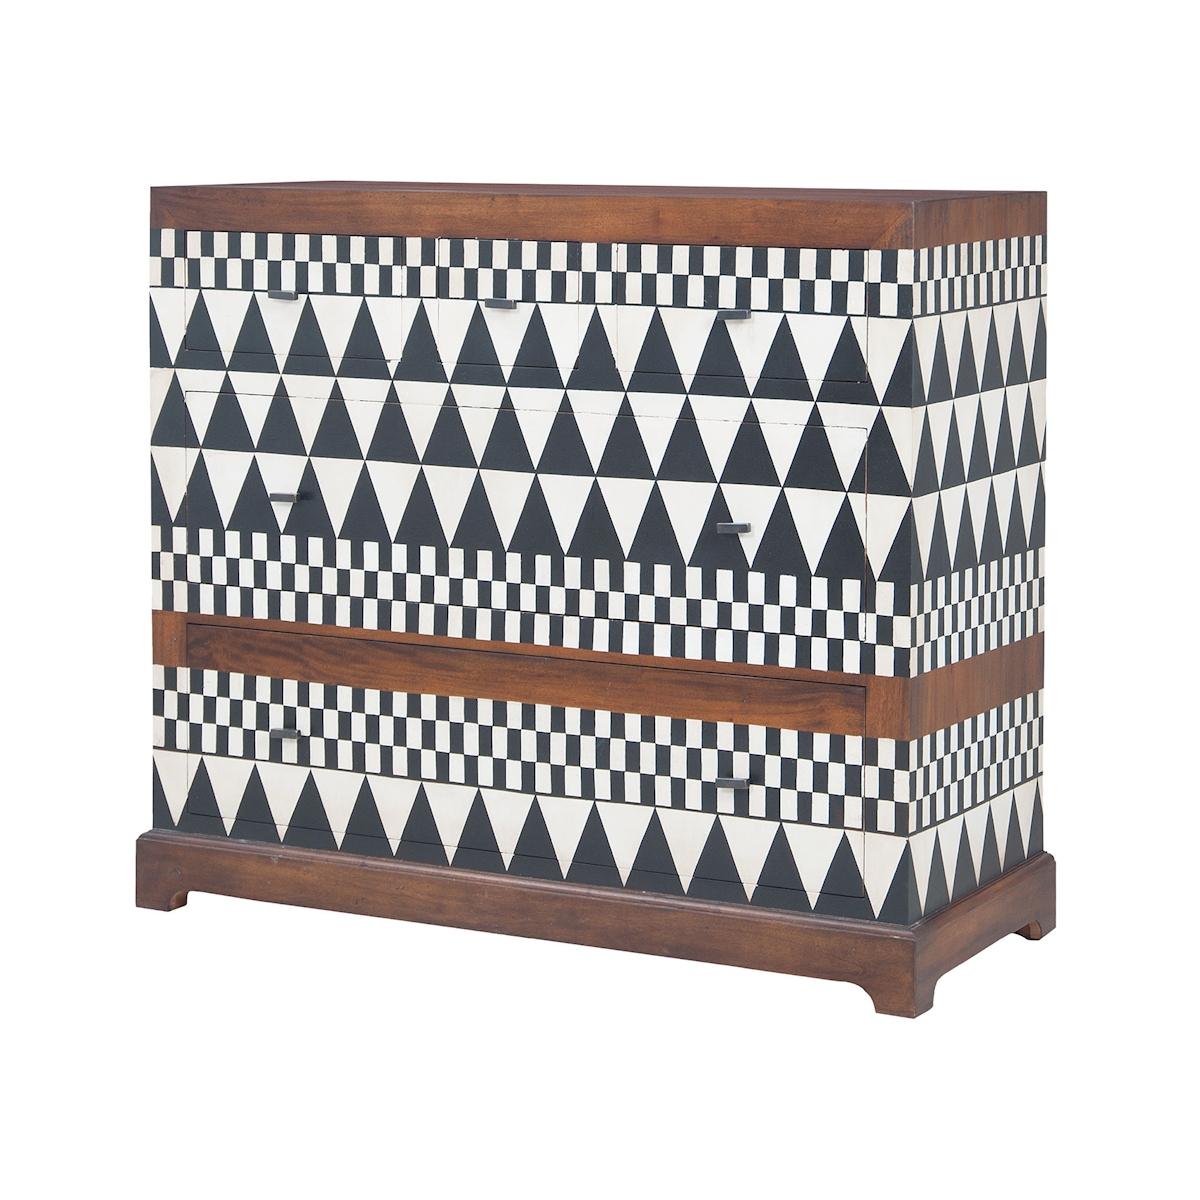 Signature Chest in New Signature Stain with Hand-Painted Geometric Art | Elk Home